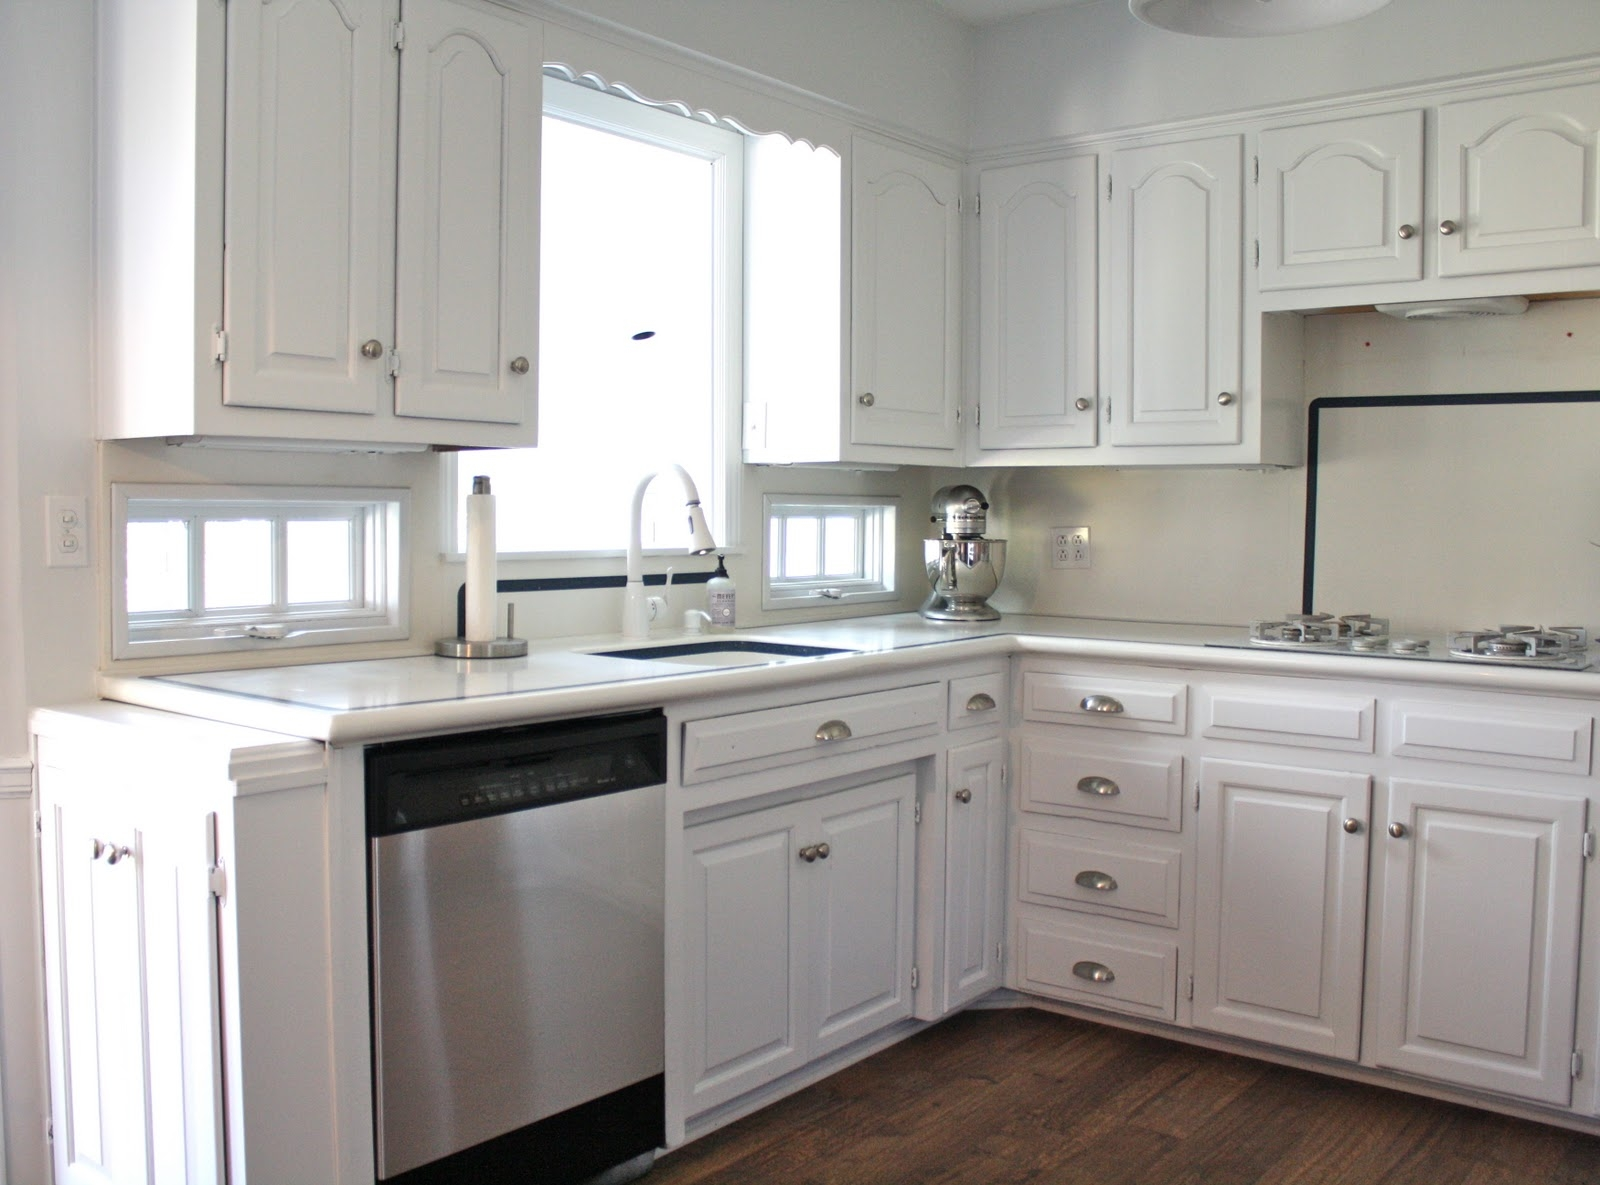 Pictures Of White Kitchen Cabinets With Handles